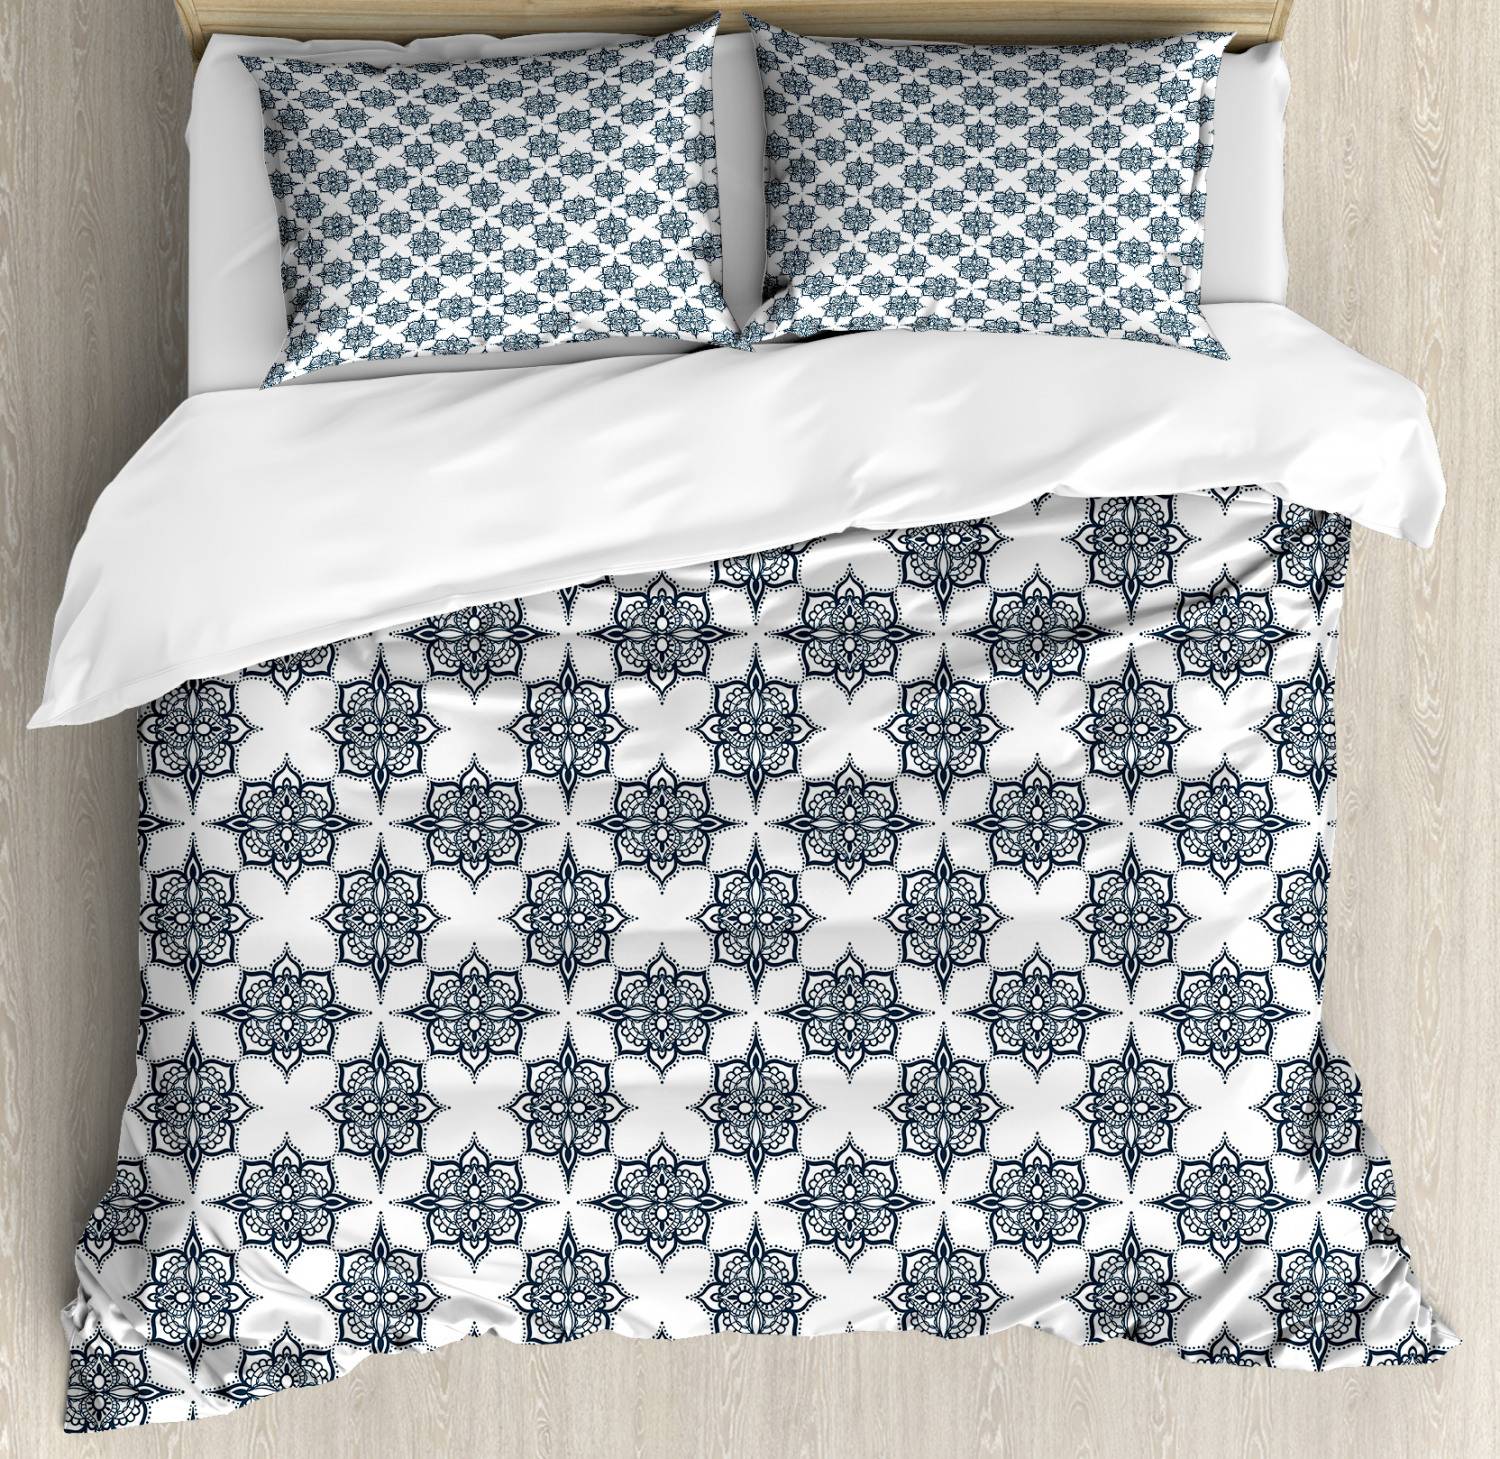 Geometric Duvet Cover Set with Pillow Shams Retro Lines Swirls Print